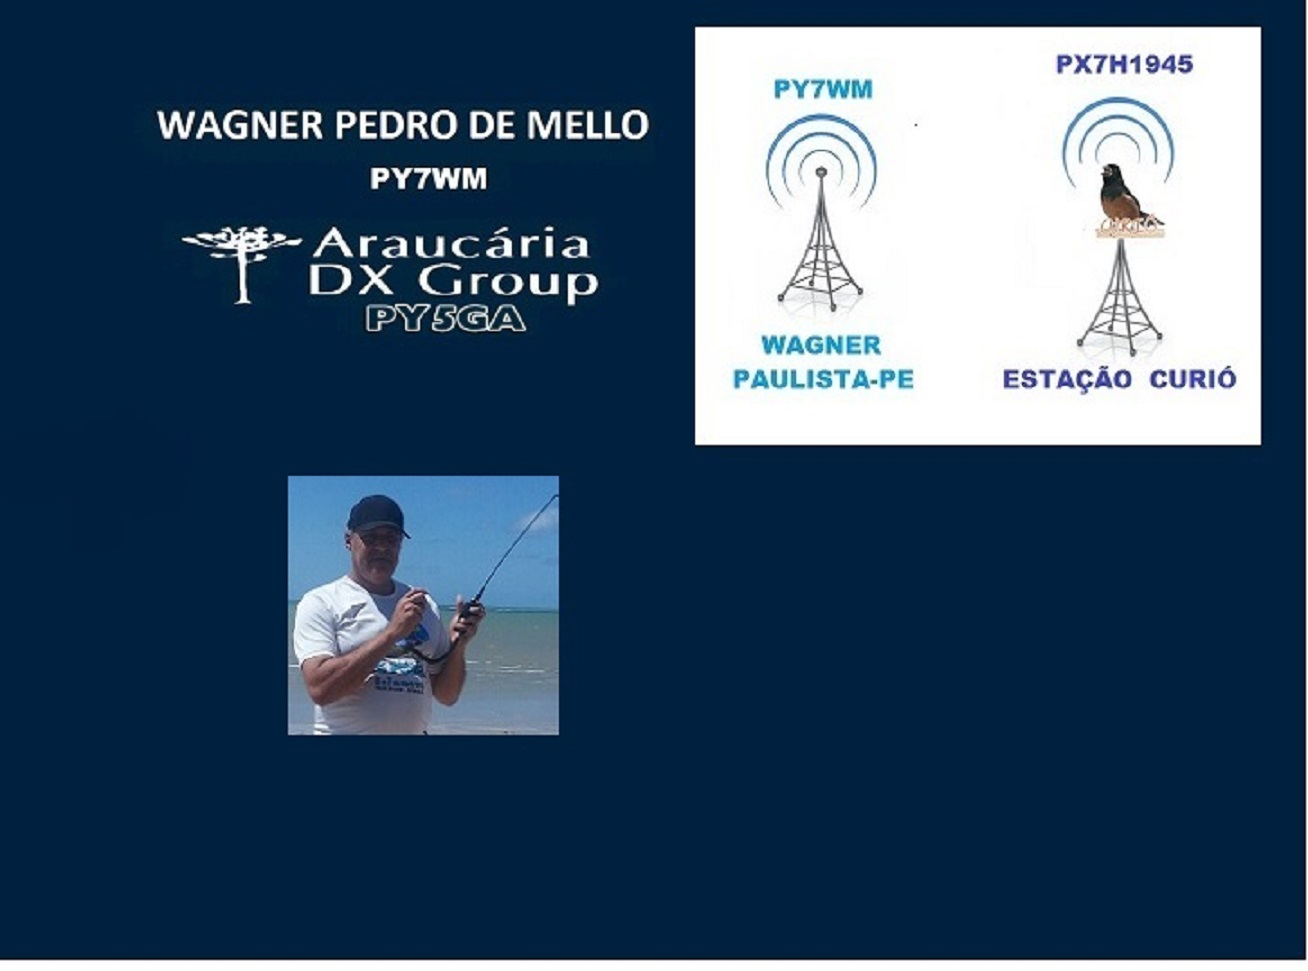 WAGNER - MEMBRO DO ARAUCÁRIA DX GROUP